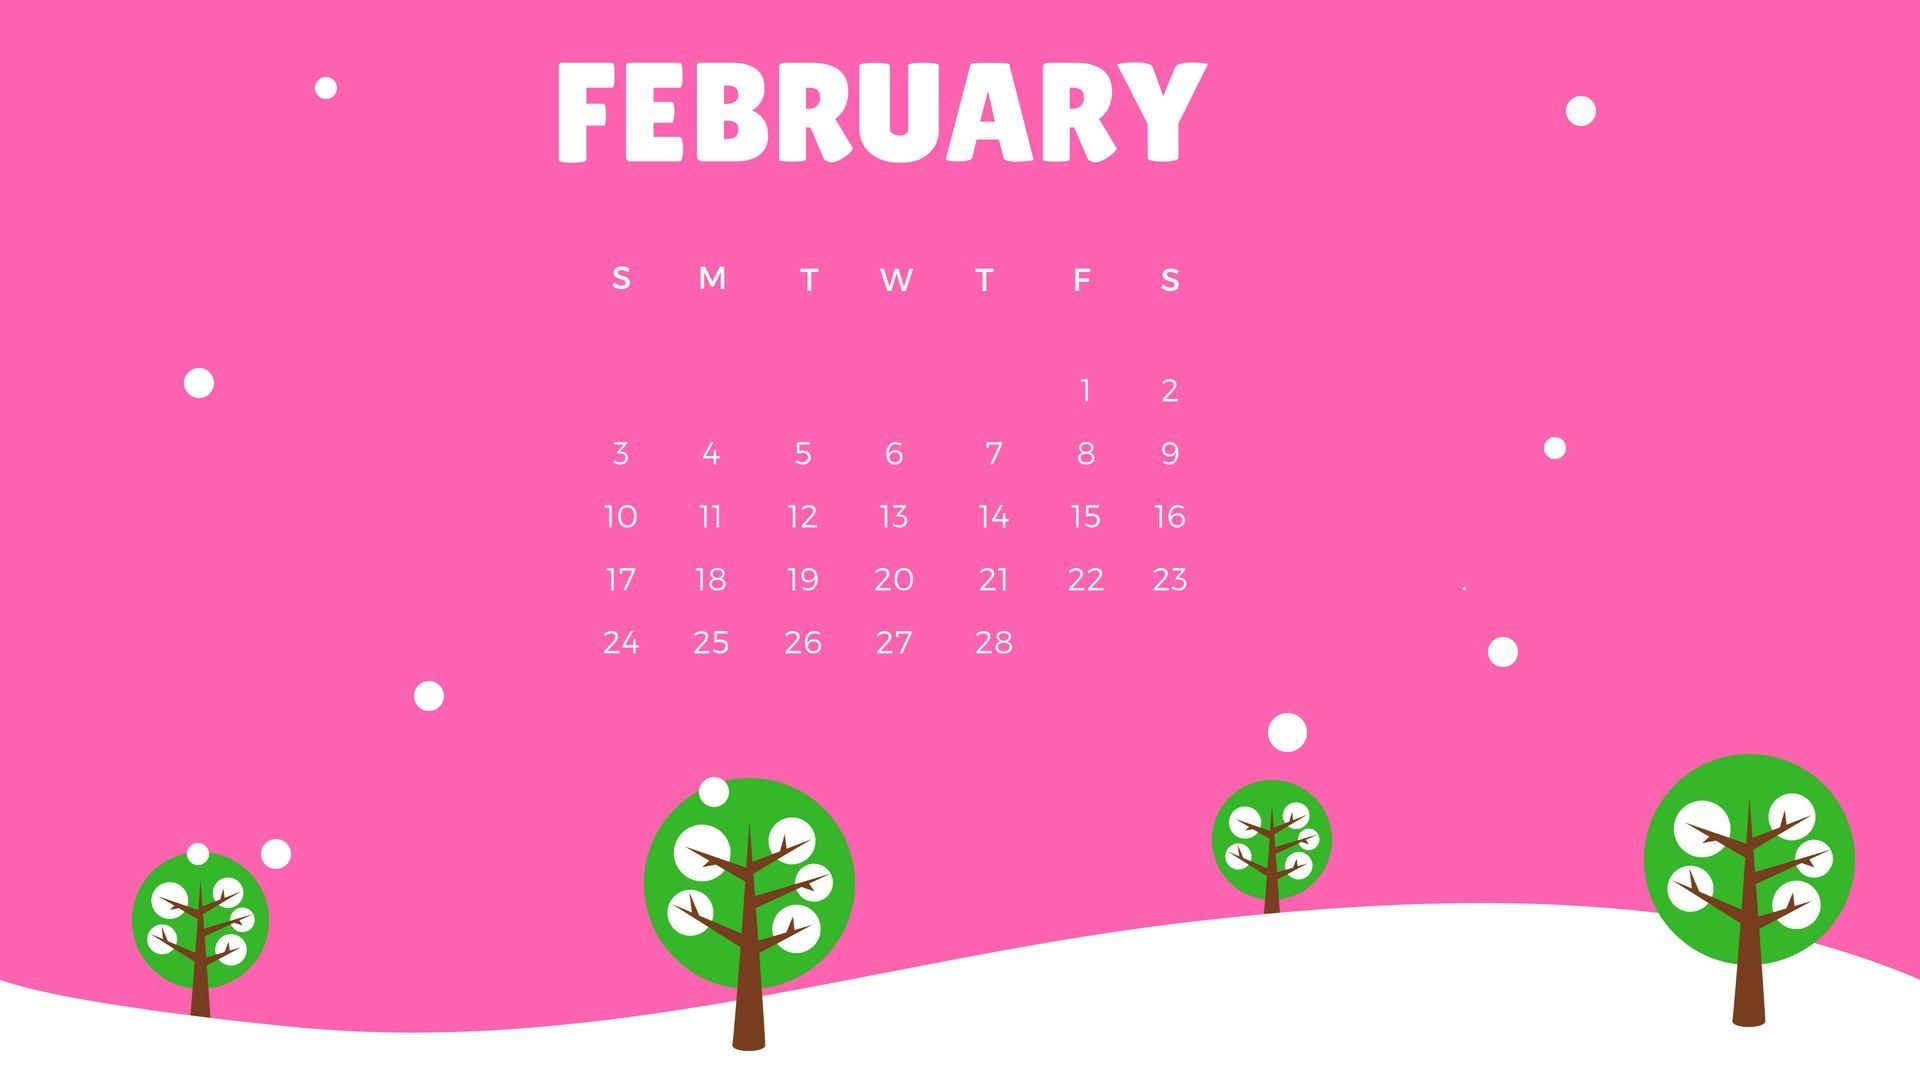 february 2019 calendar wallpaper calendar 2019 wallpapers::February 2019 iPhone Calendar Wallpaper